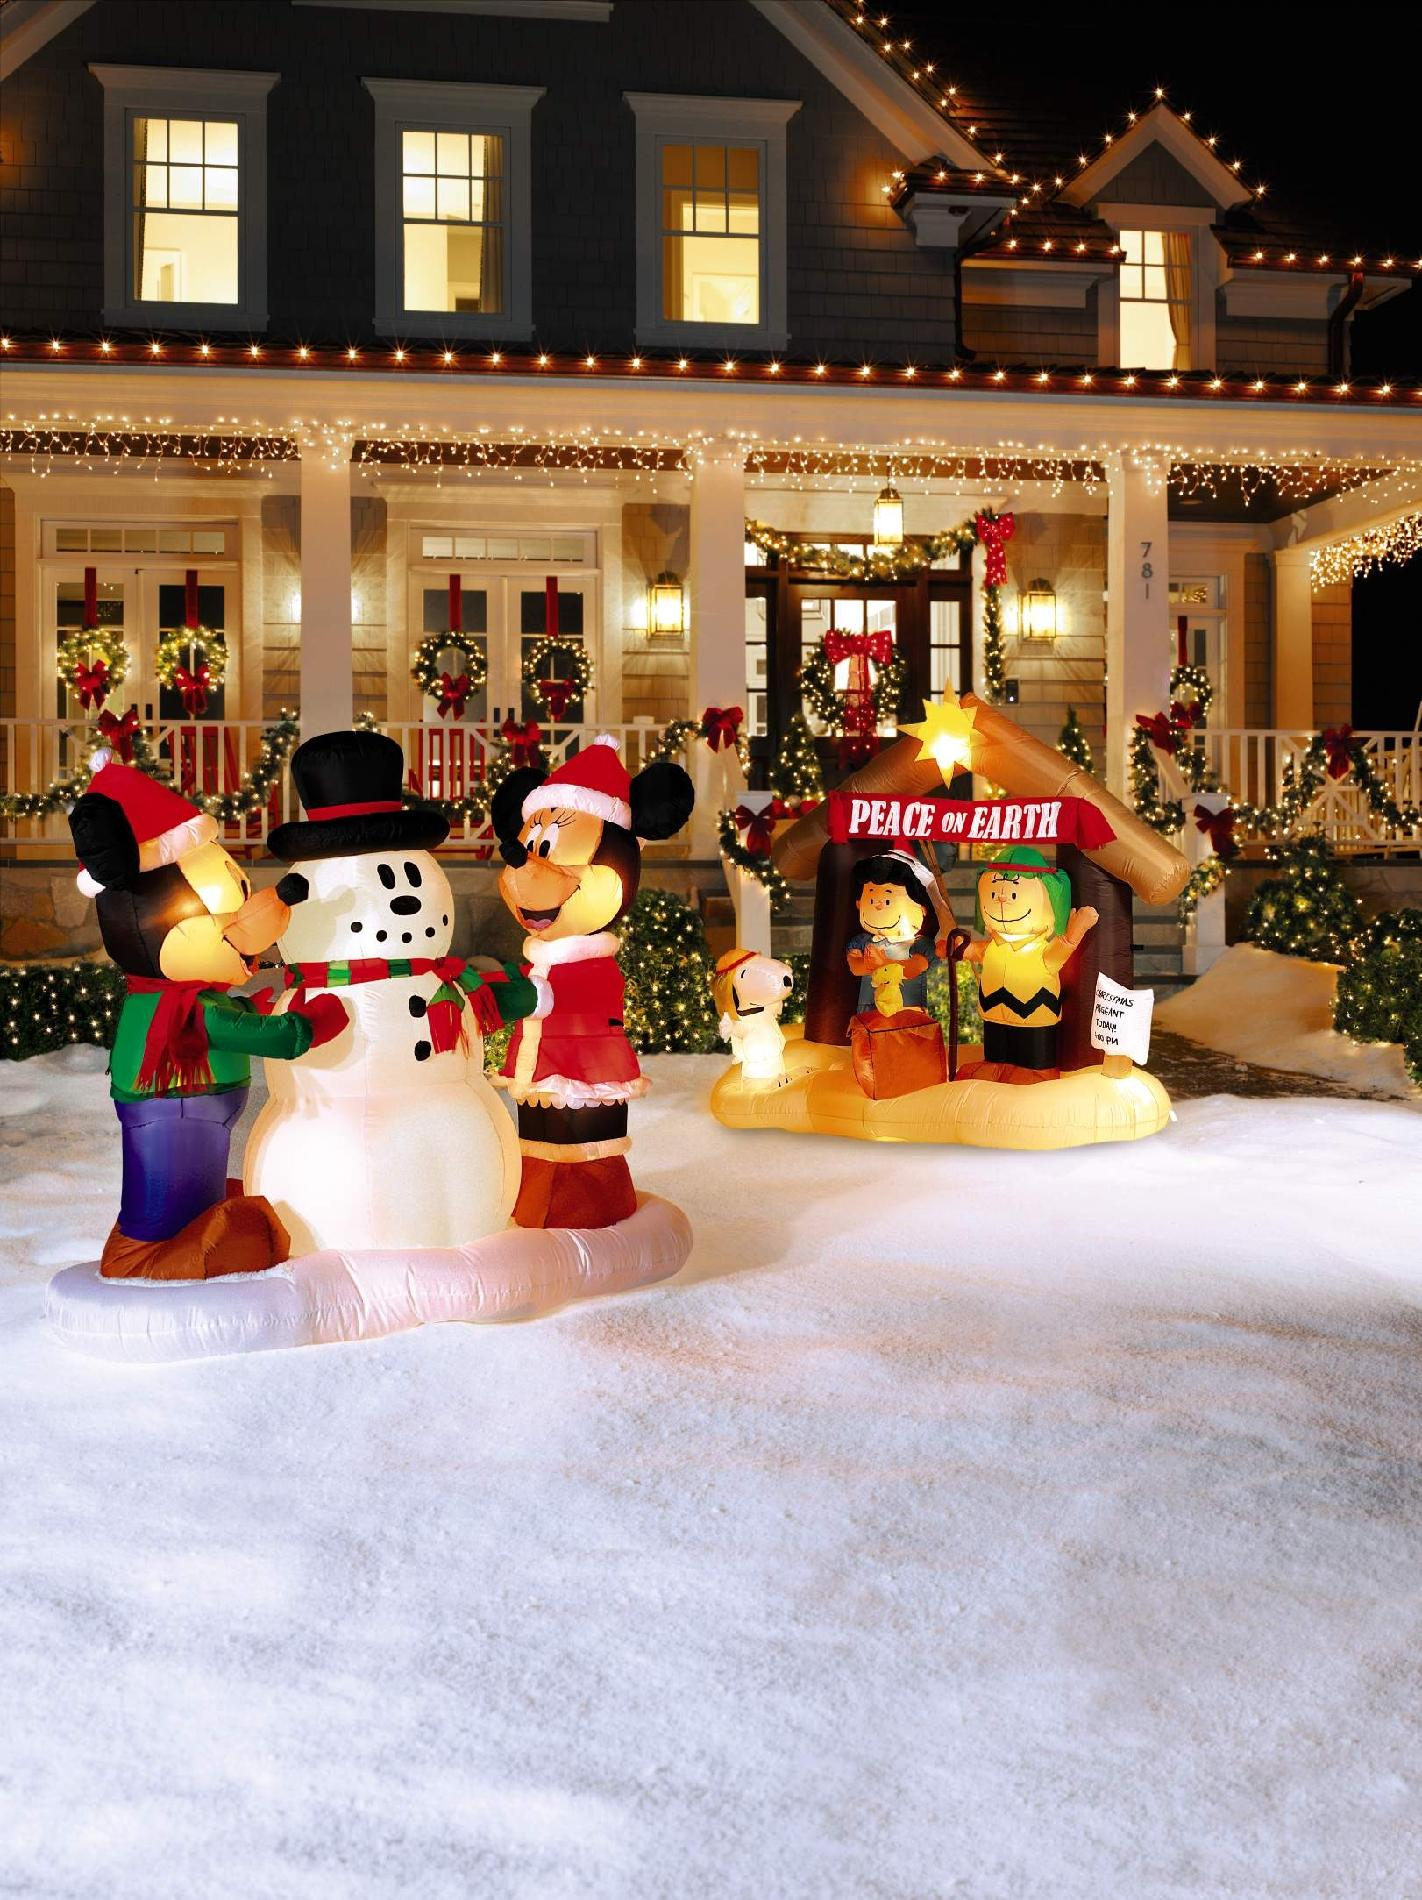 Outdoor Decorations & Figures